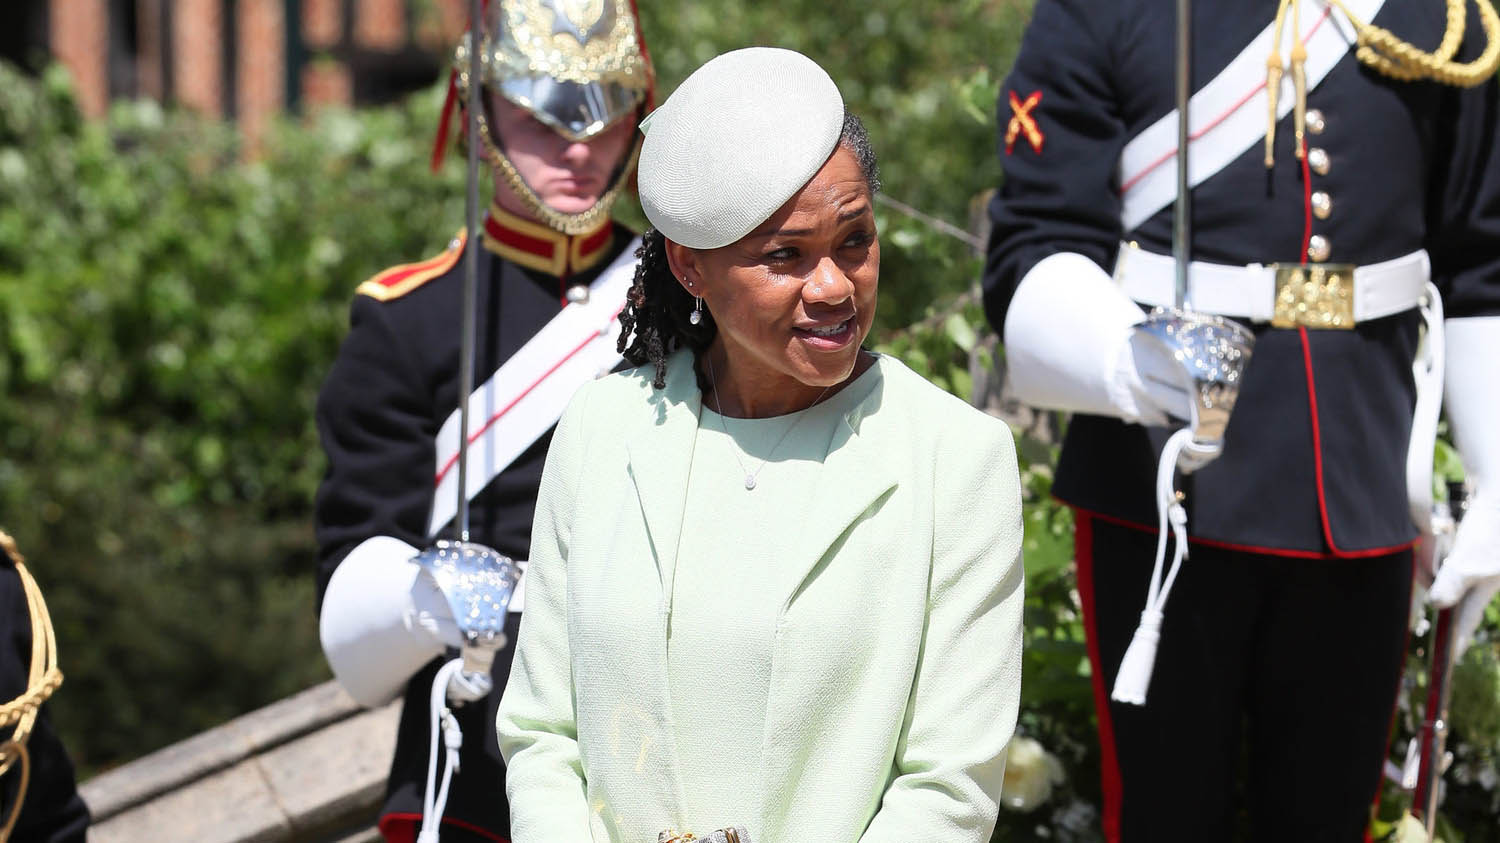 Doria Ragland leaves St George's Chapel at Windsor Castle after the wedding of Prince Harry, Duke of Sussex and Meghan Markle on May 19, 2018 in Windsor, England. (Photo by Brian Lawless - WPA Pool/Getty Images)